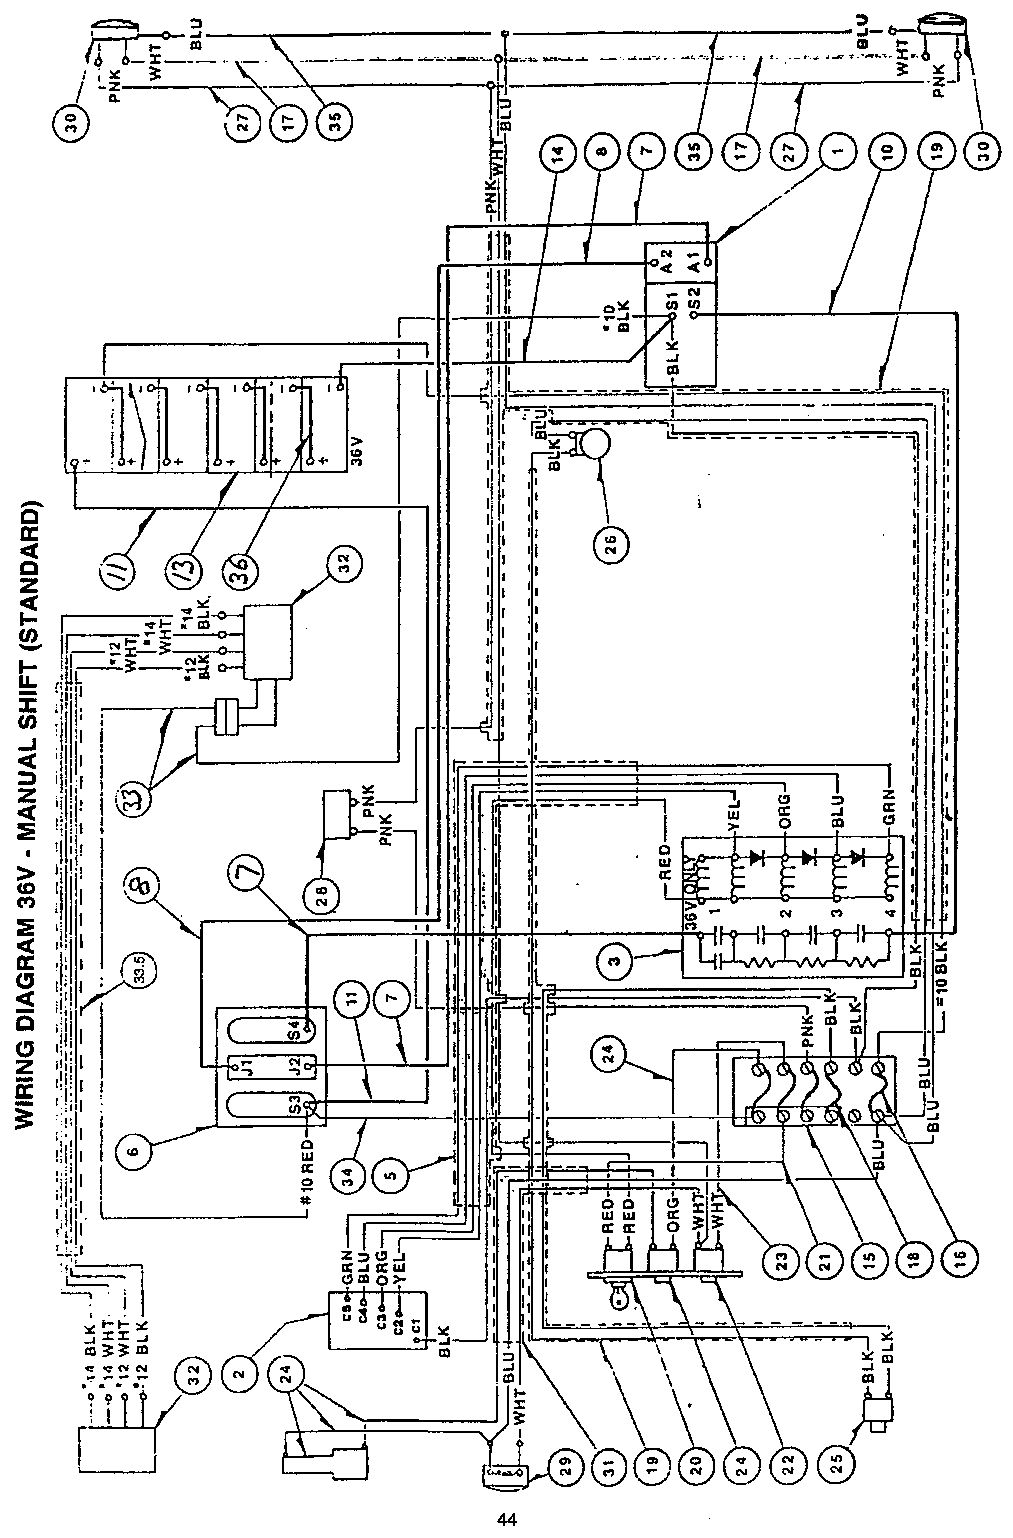 280a Nordskog Electric Vehicles Diagram : 39 Wiring